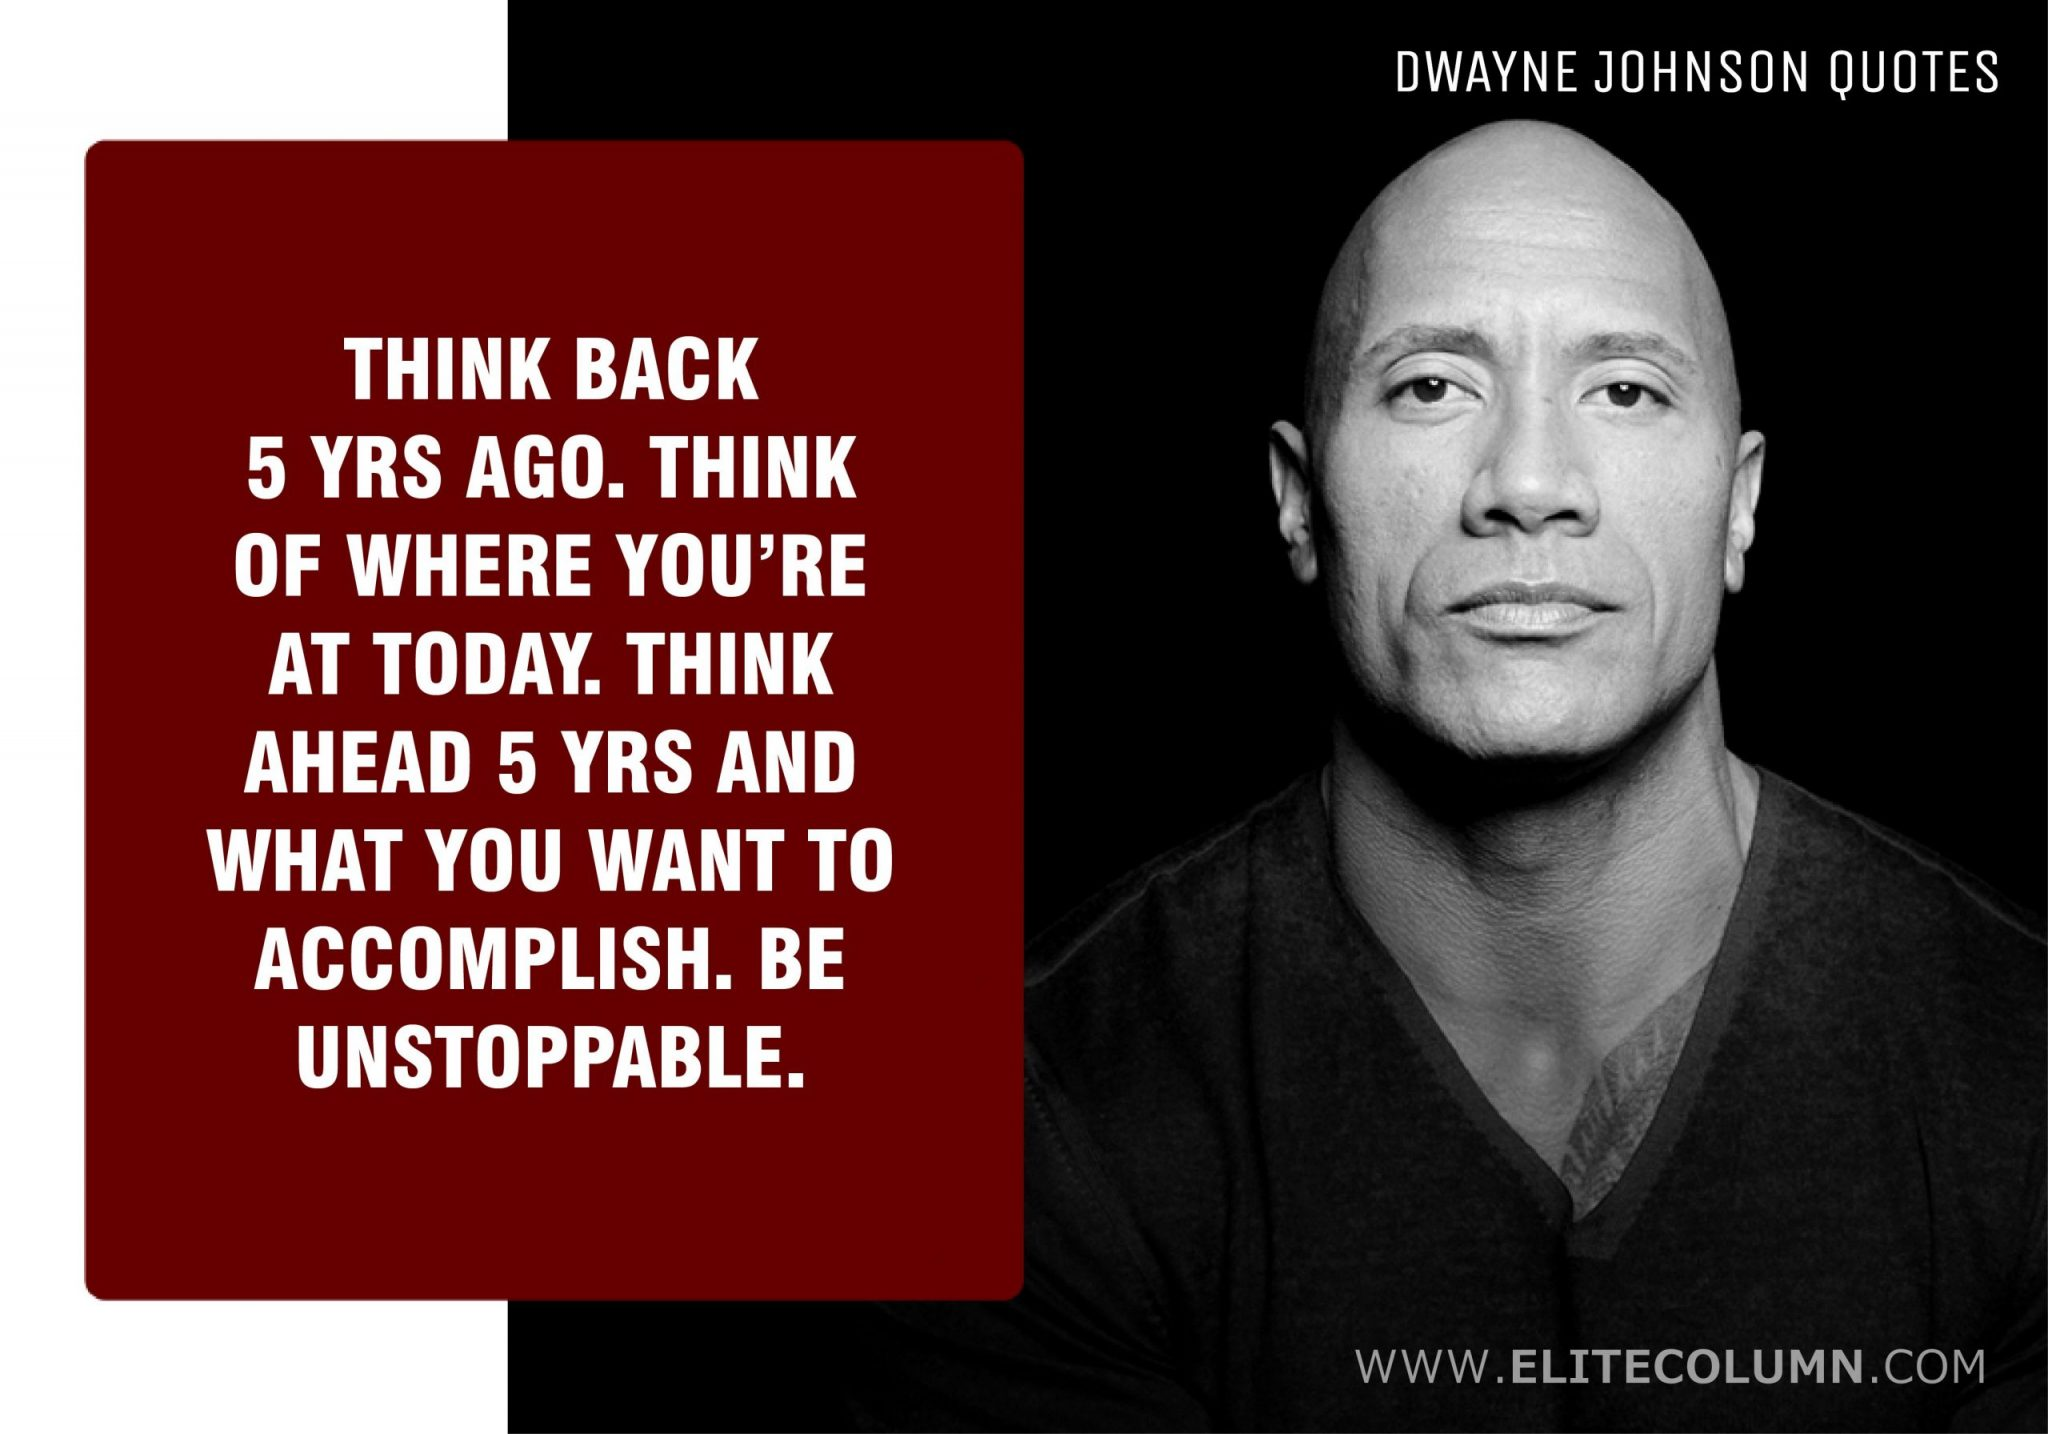 Dwayne Johnson Quotes (11)